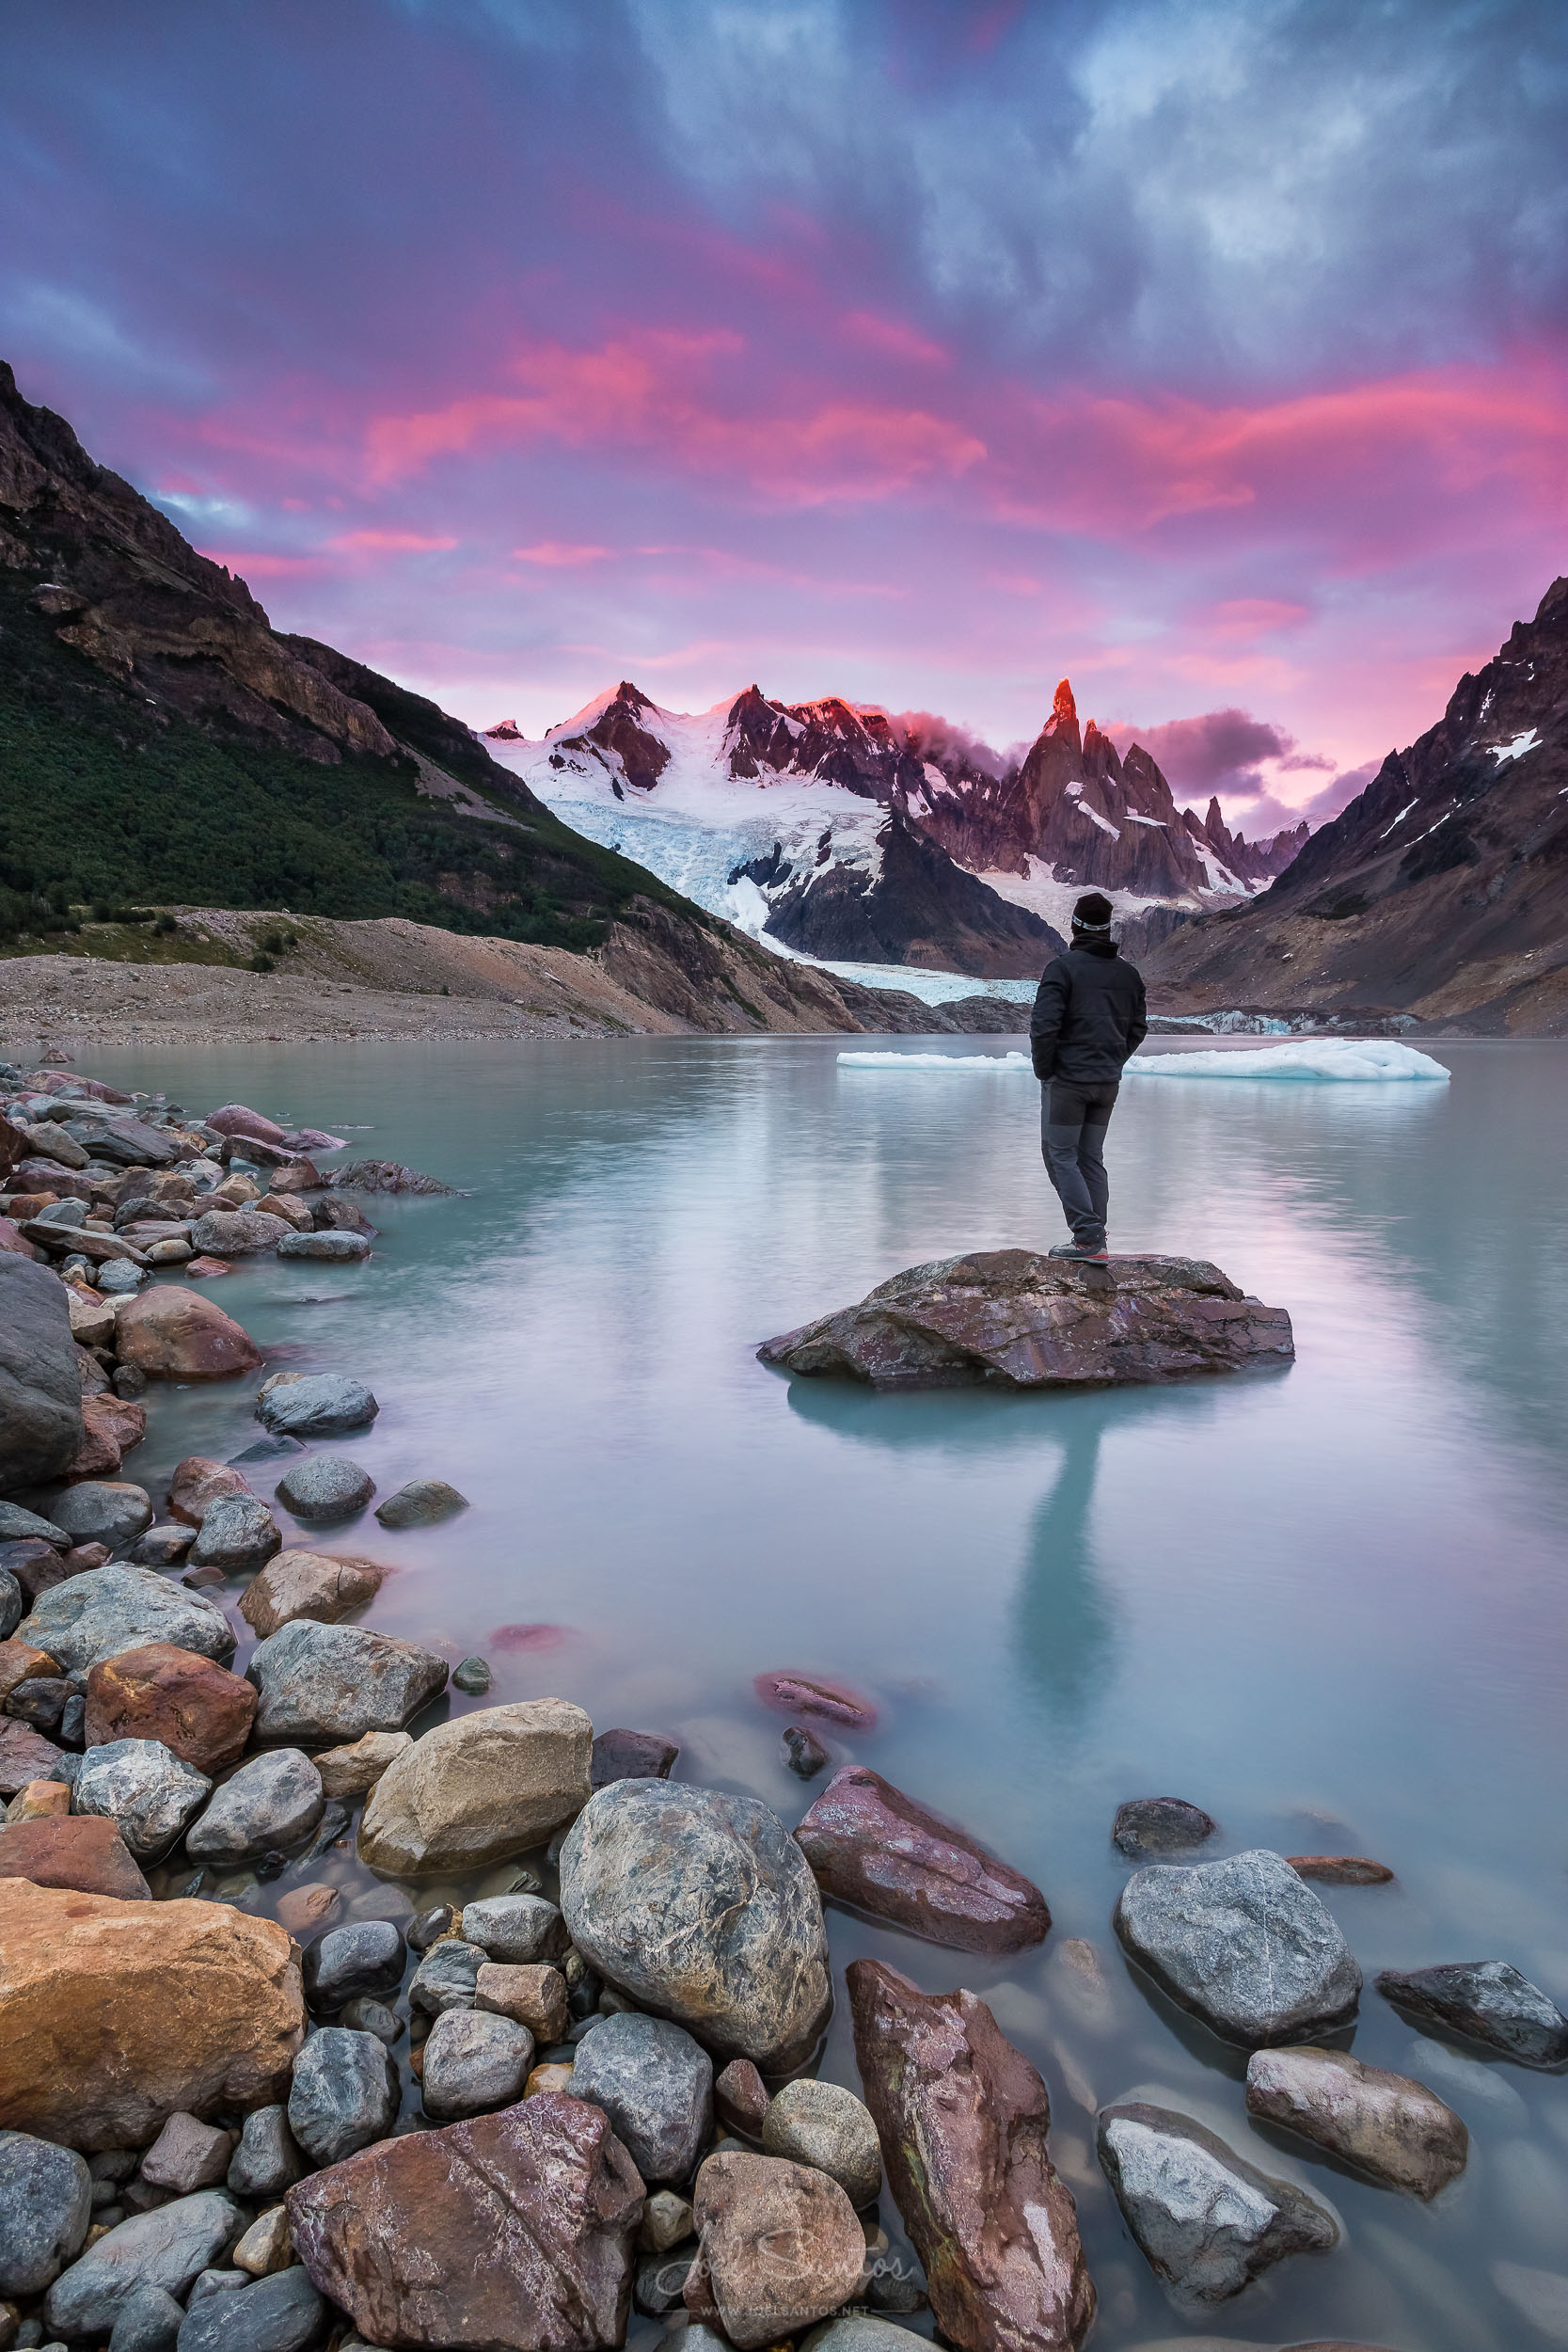 Cerro Torre, Southern Patagonian Ice Field, west of Fitz Roy, Pa